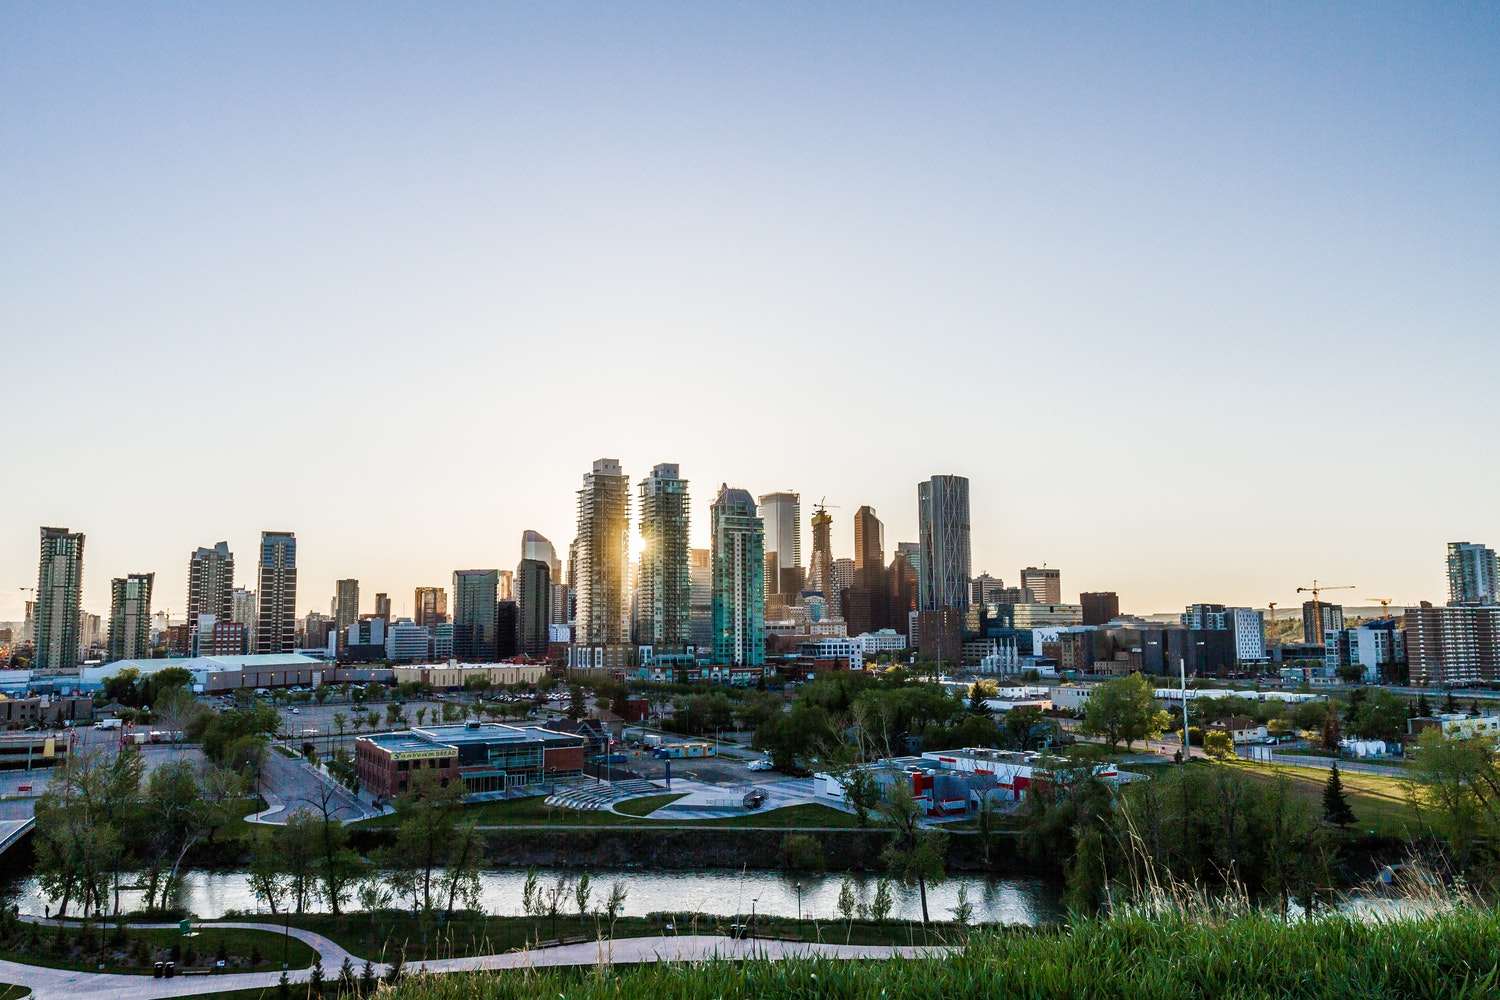 Calgary makes history by launching its own digital currency